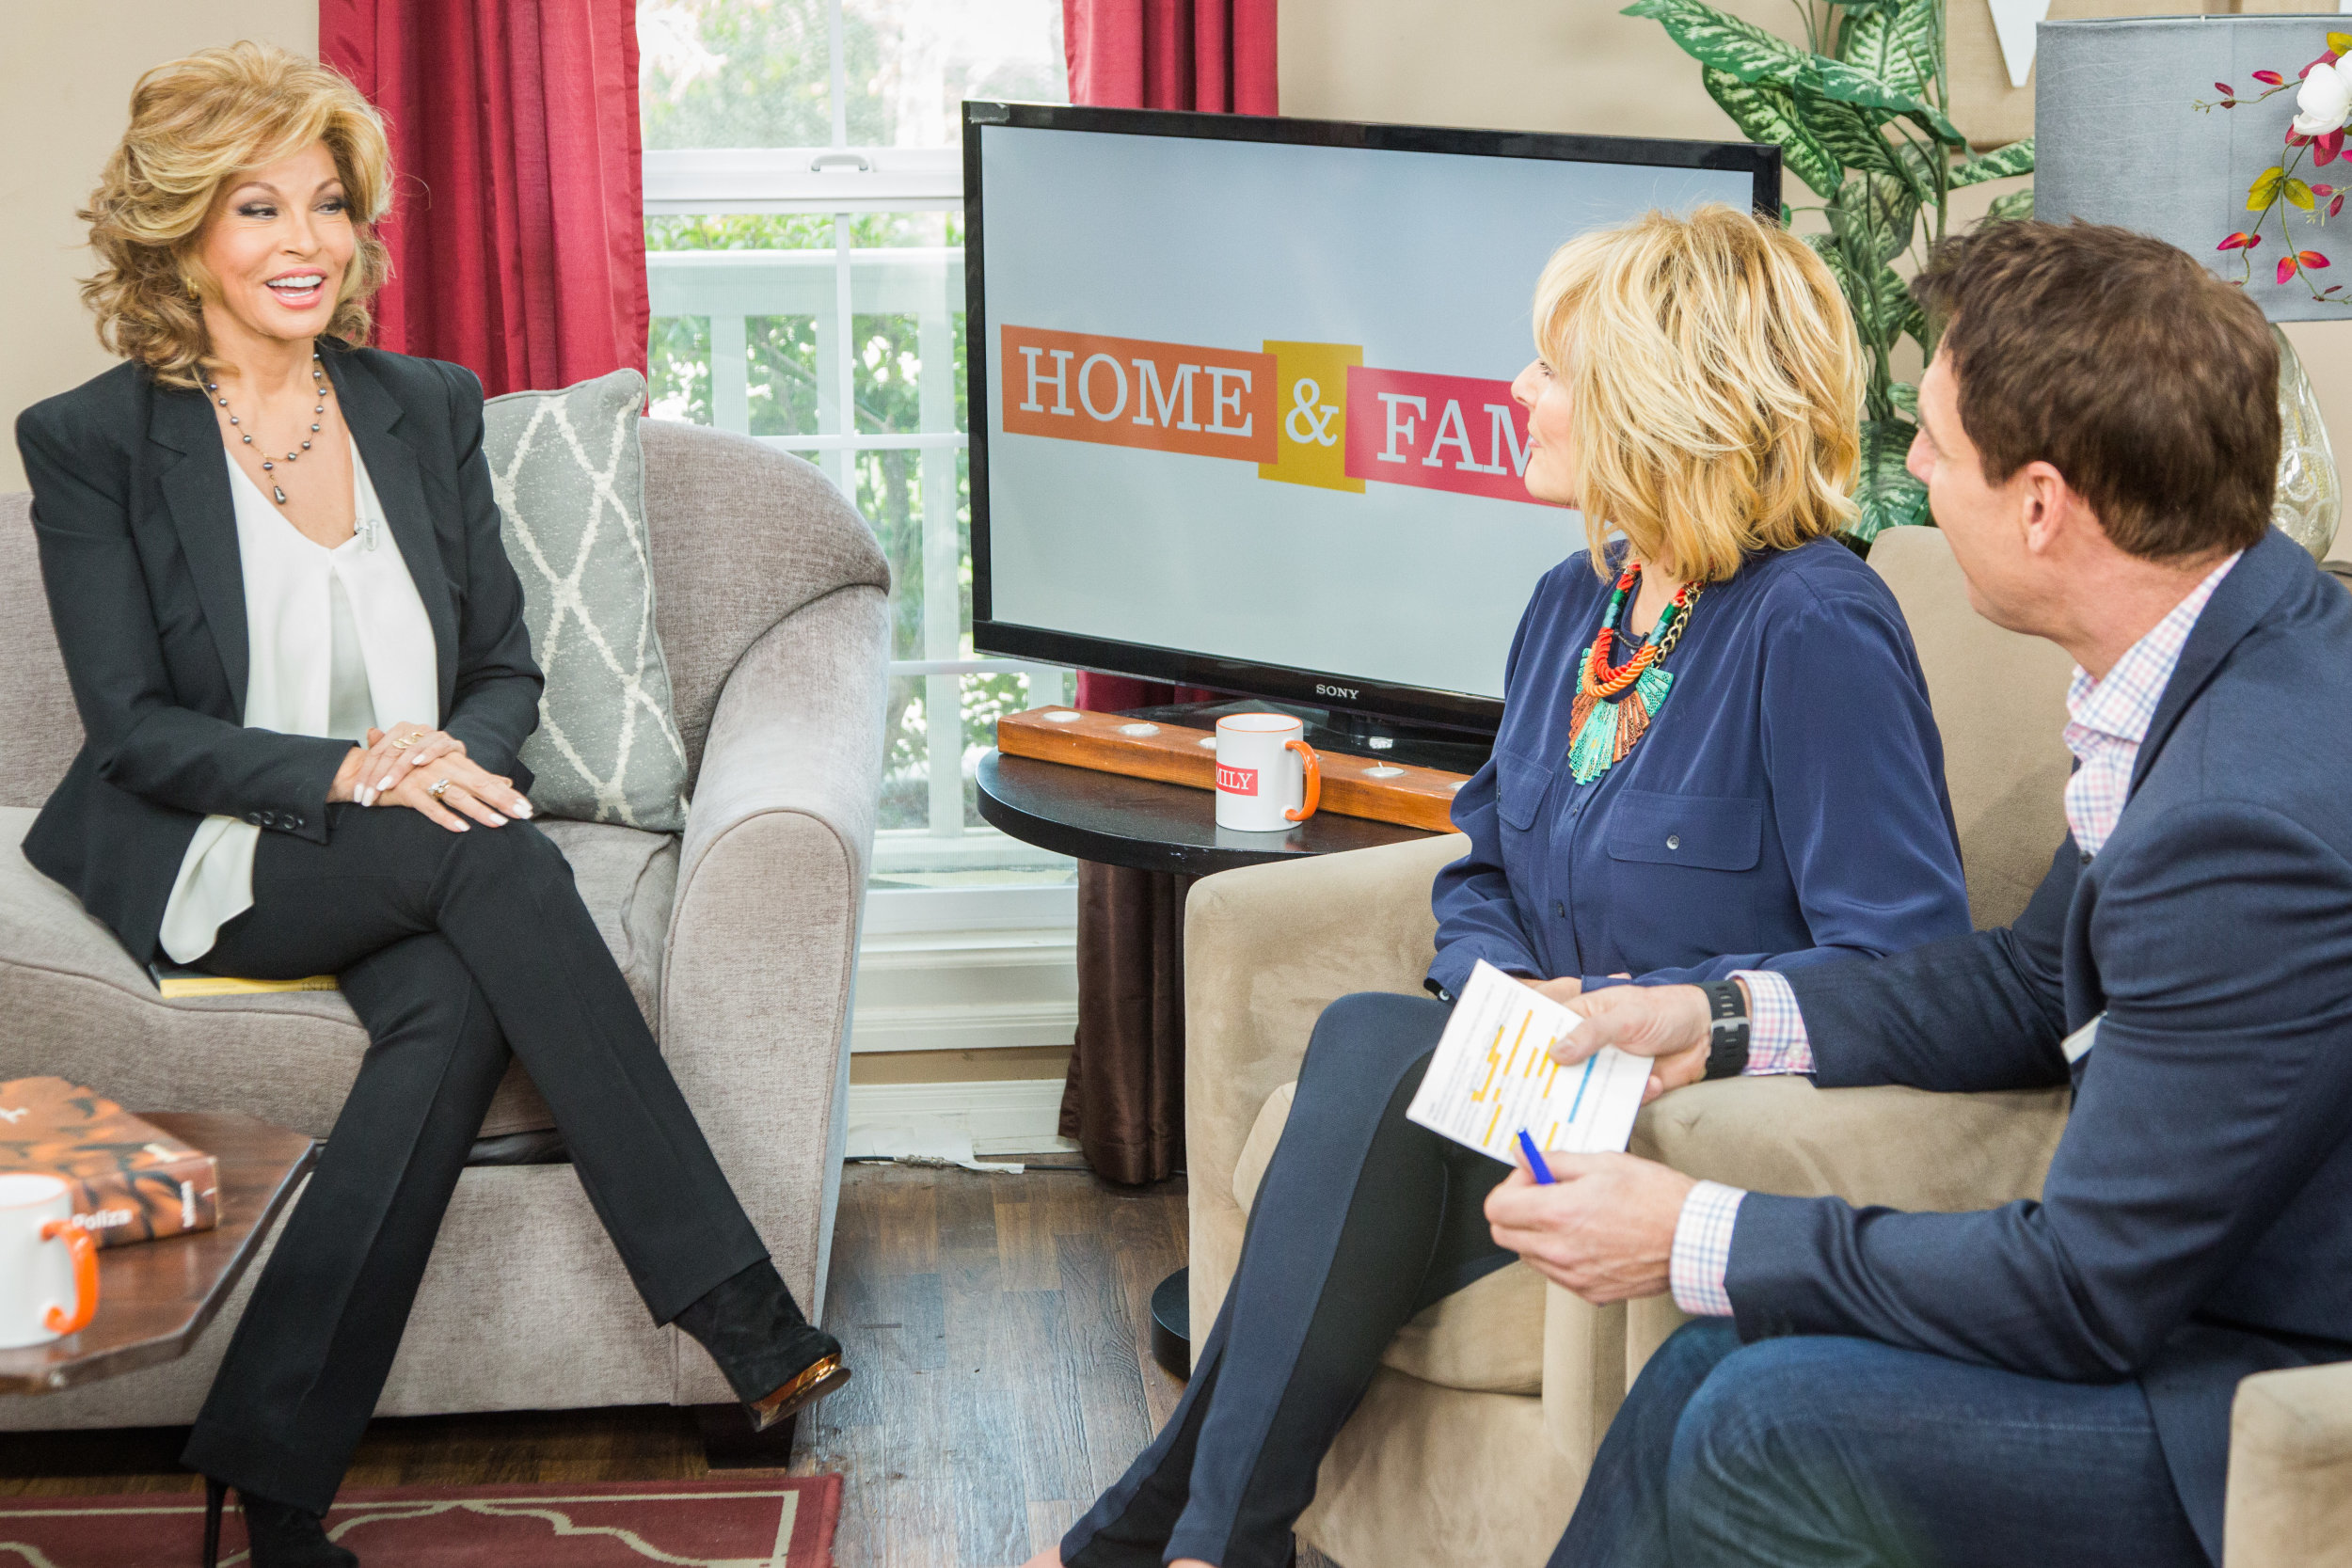 Hollywood steals home and family - Raquel Welch Interview Home Family